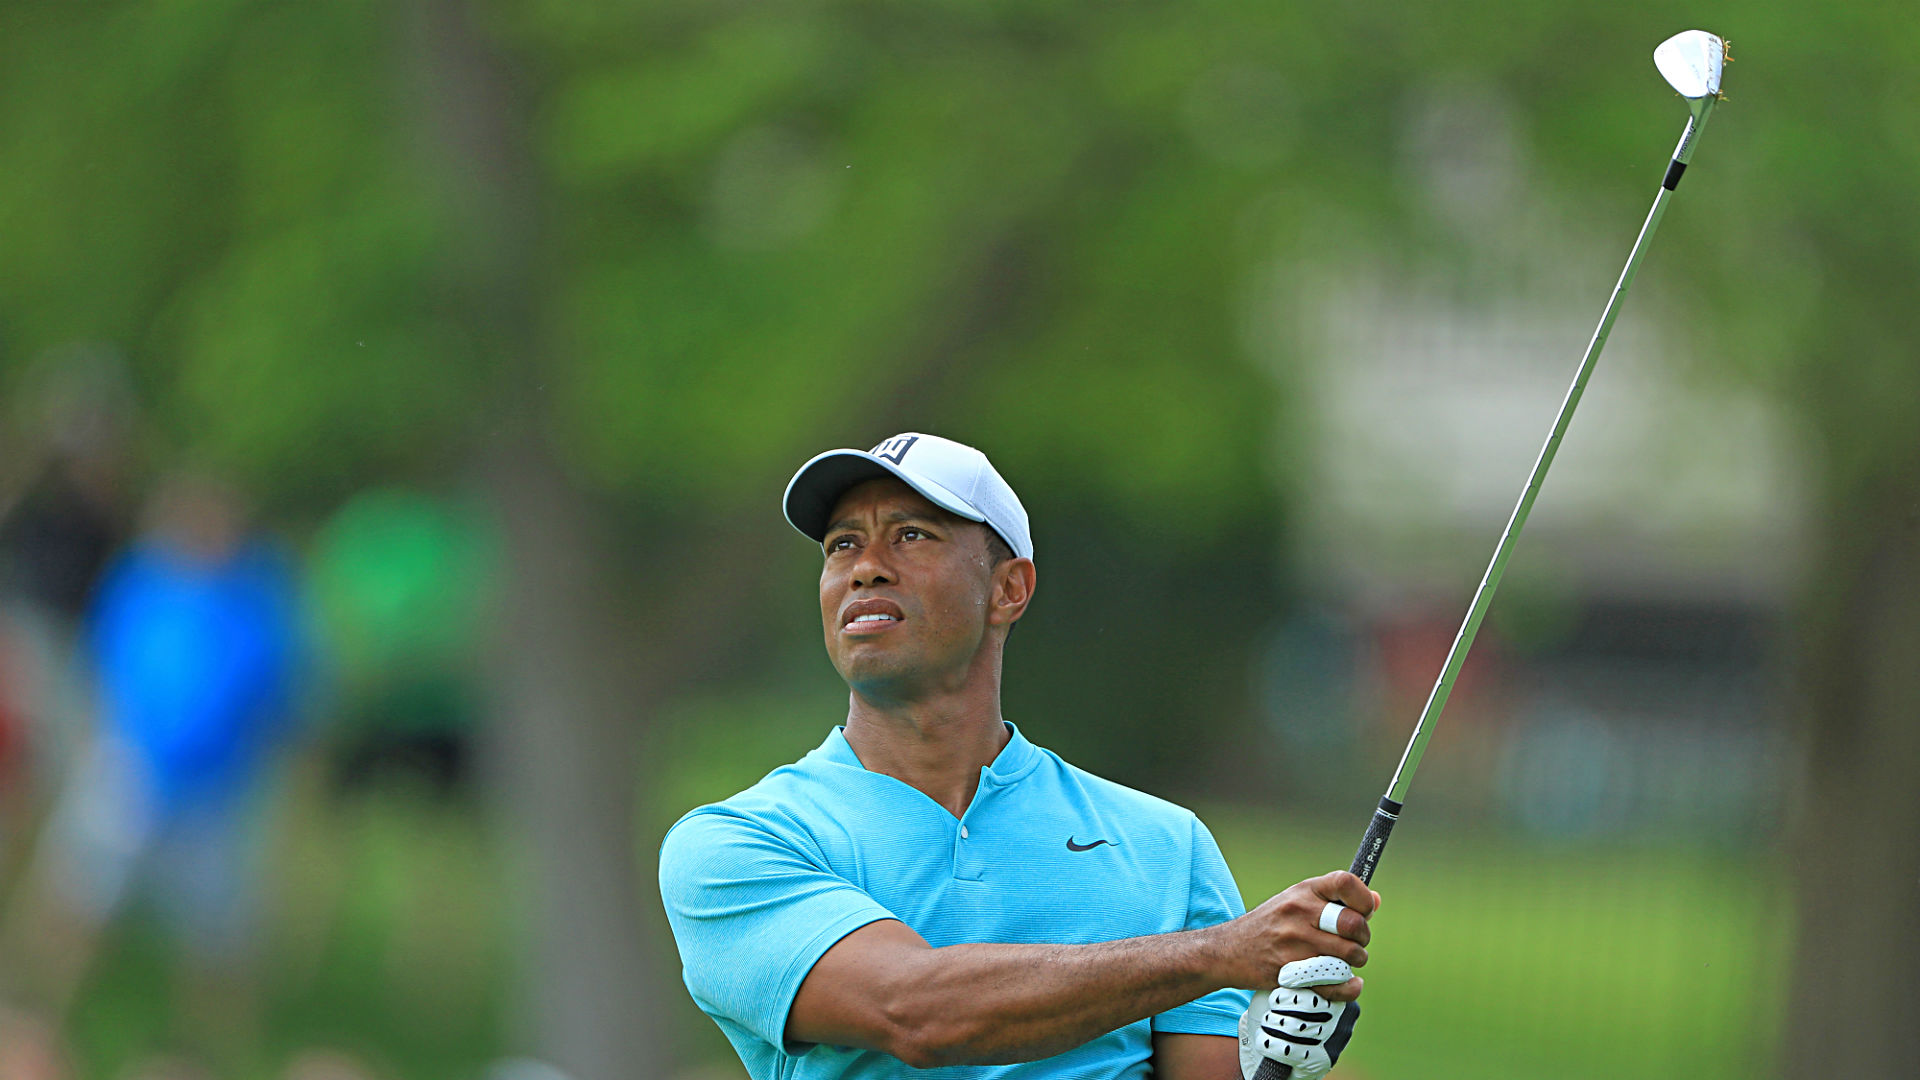 tiger woods u2019 score  round 2 results  highlights from 2019